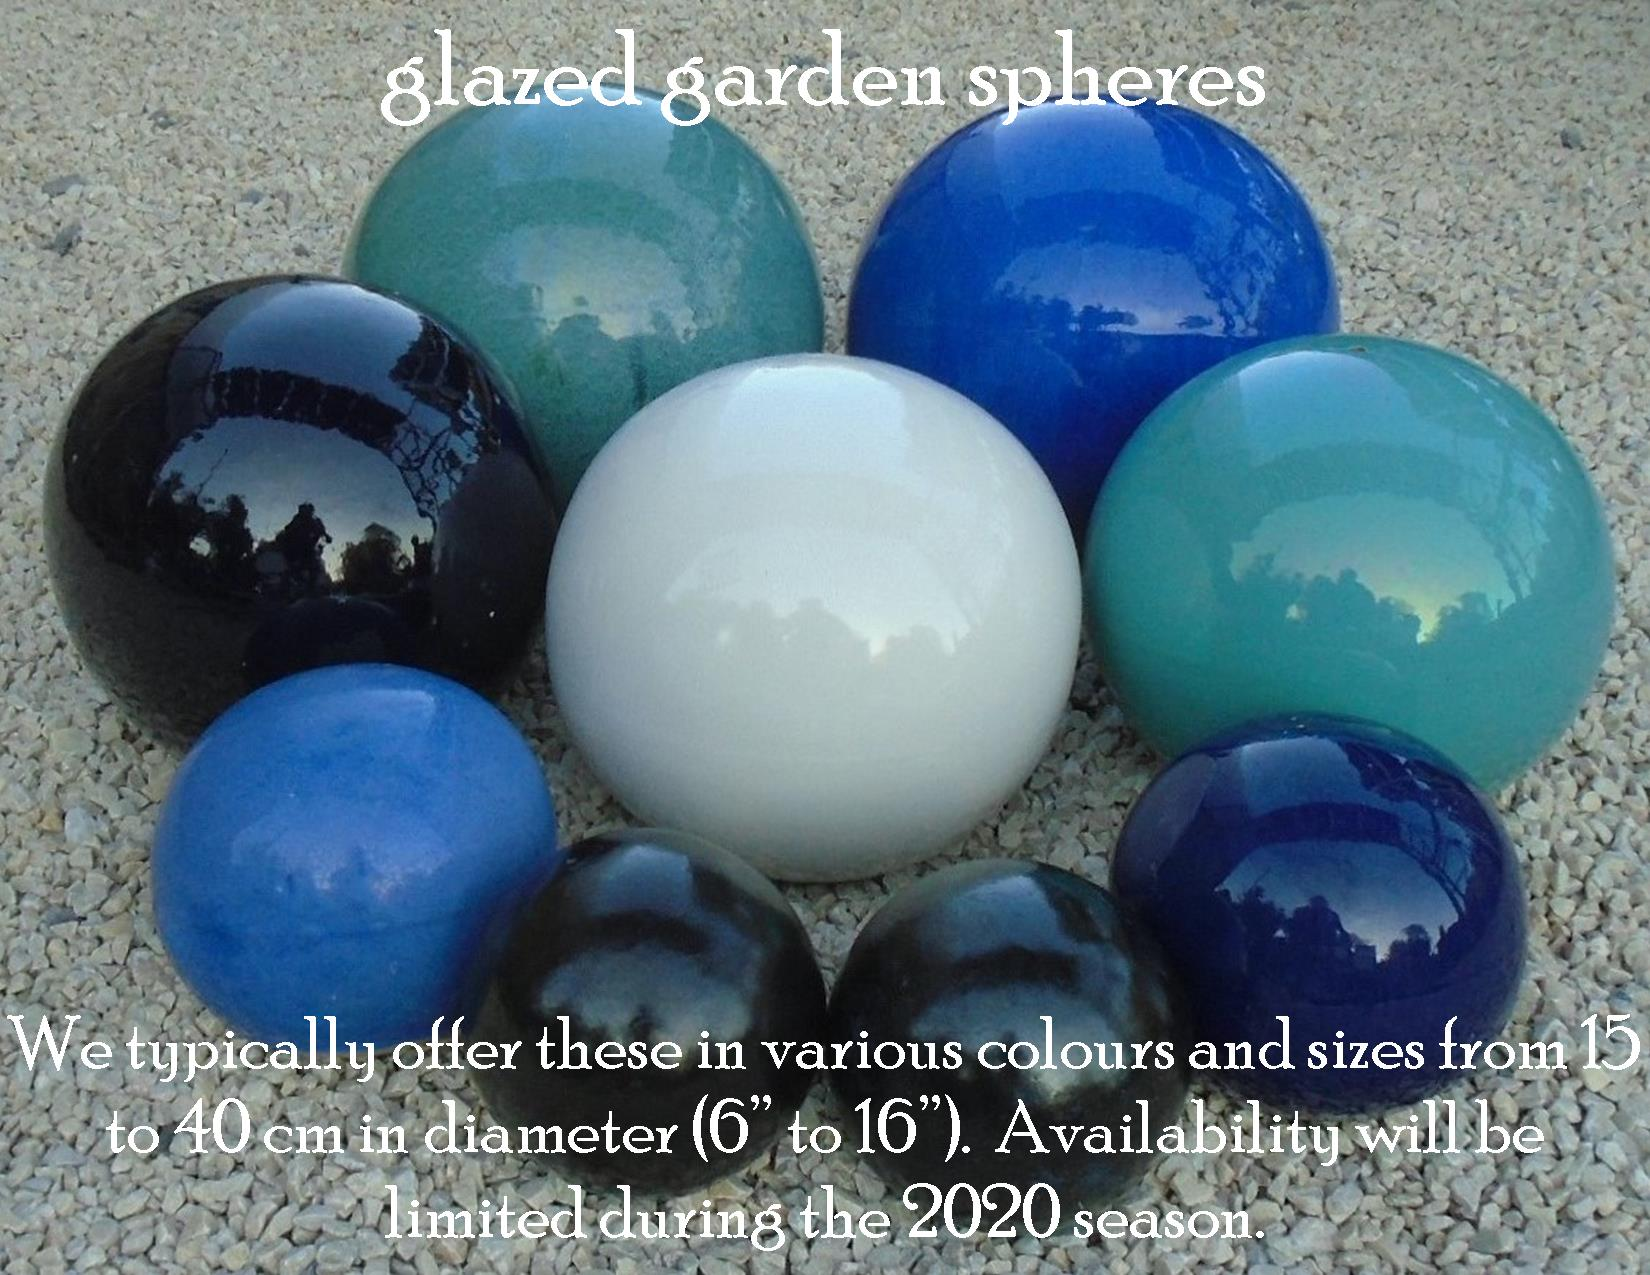 glazed garden spheres